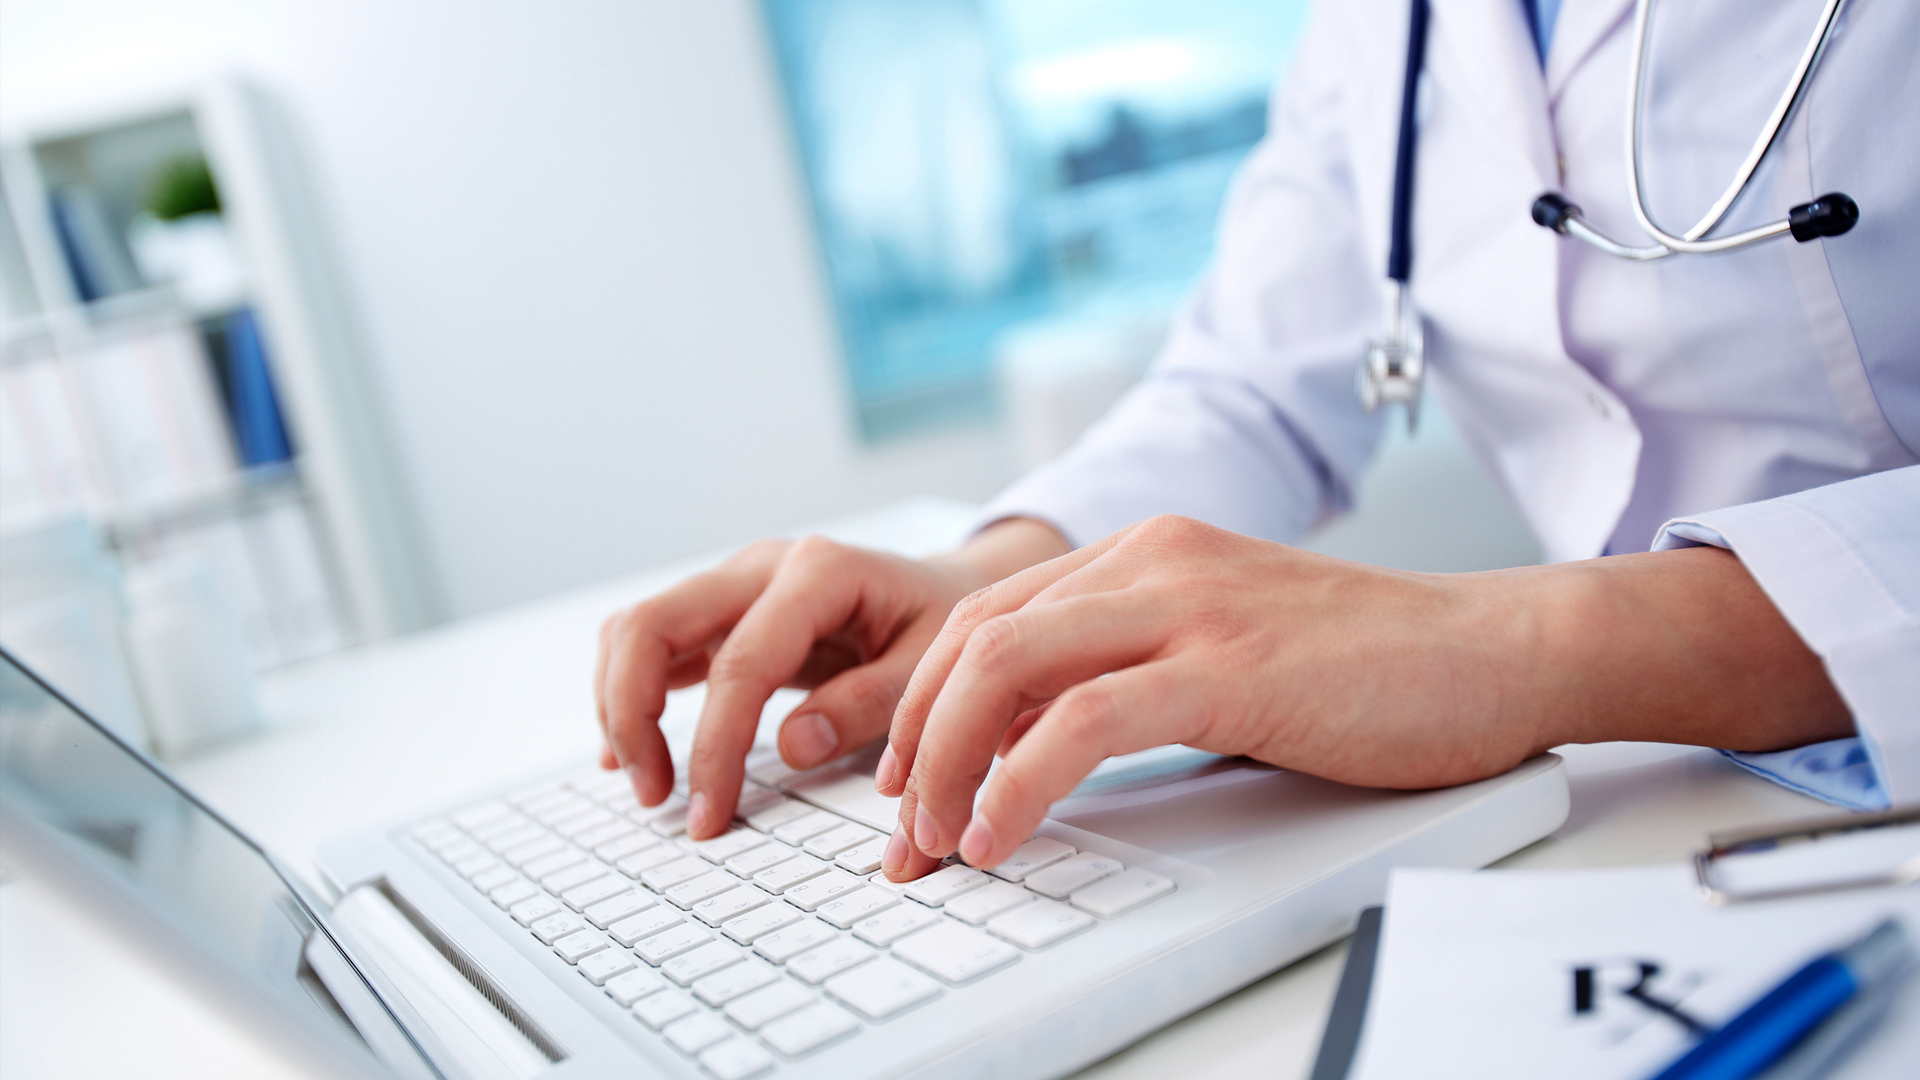 medical professional typing on a laptop keyboard